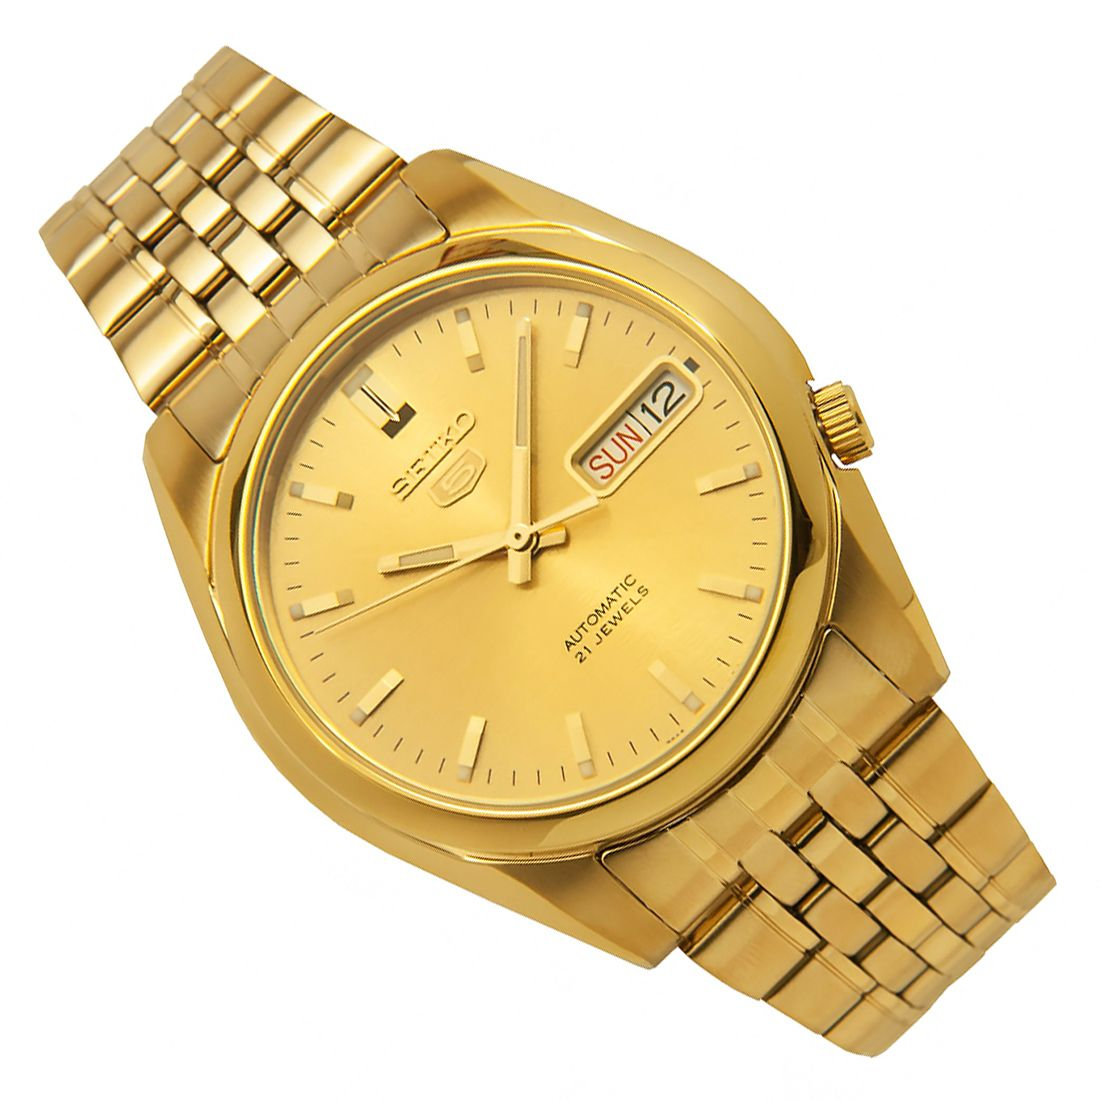 Seiko 5 Automatic Snk366k1 Seiko 5 Automatic Seiko Mens Casual Watches